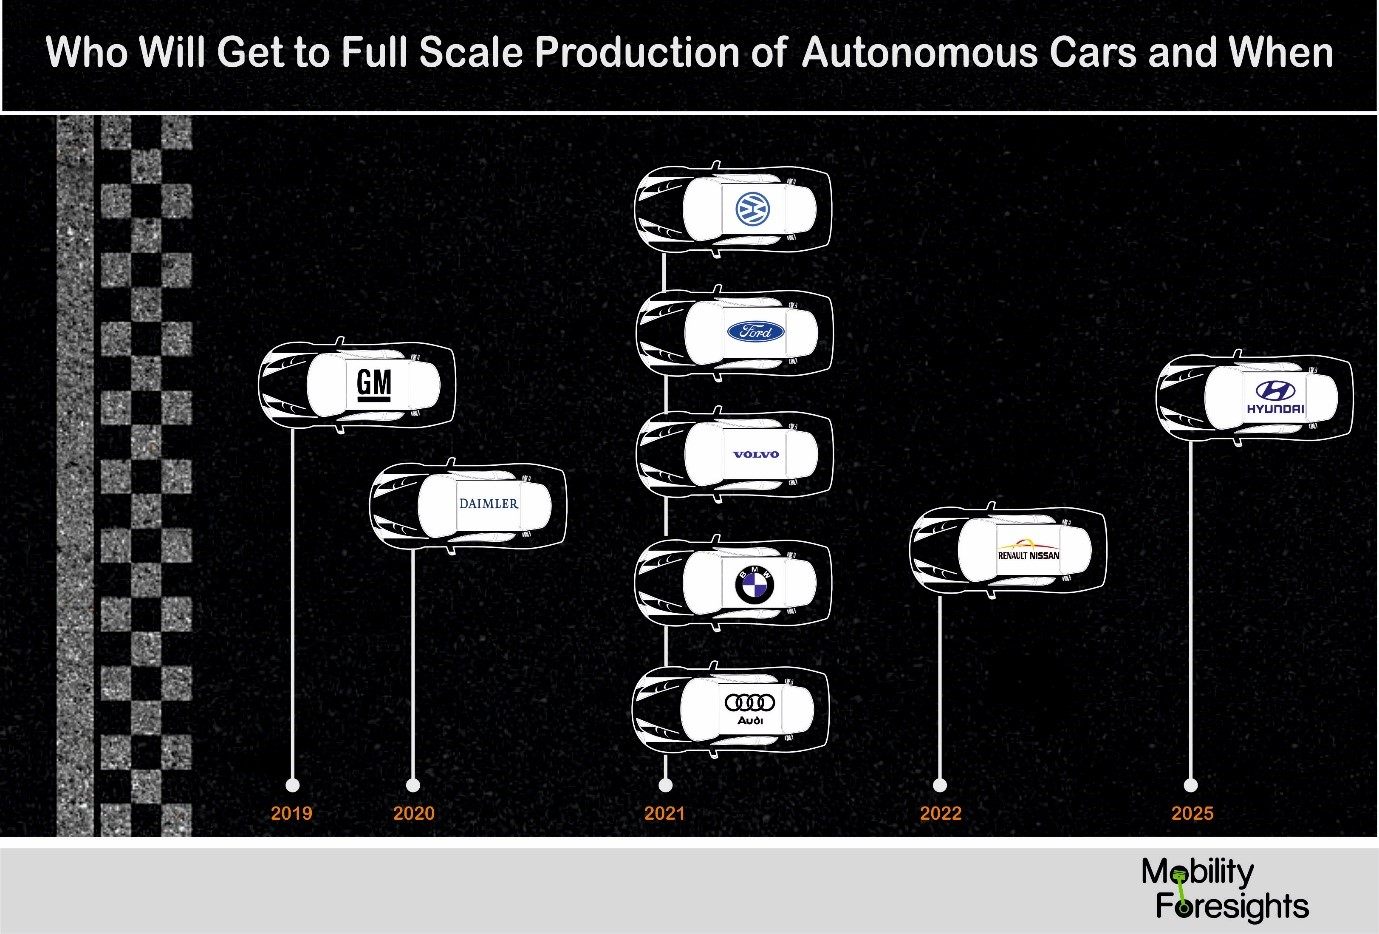 who will get to full scale production of autonomous cars and when?